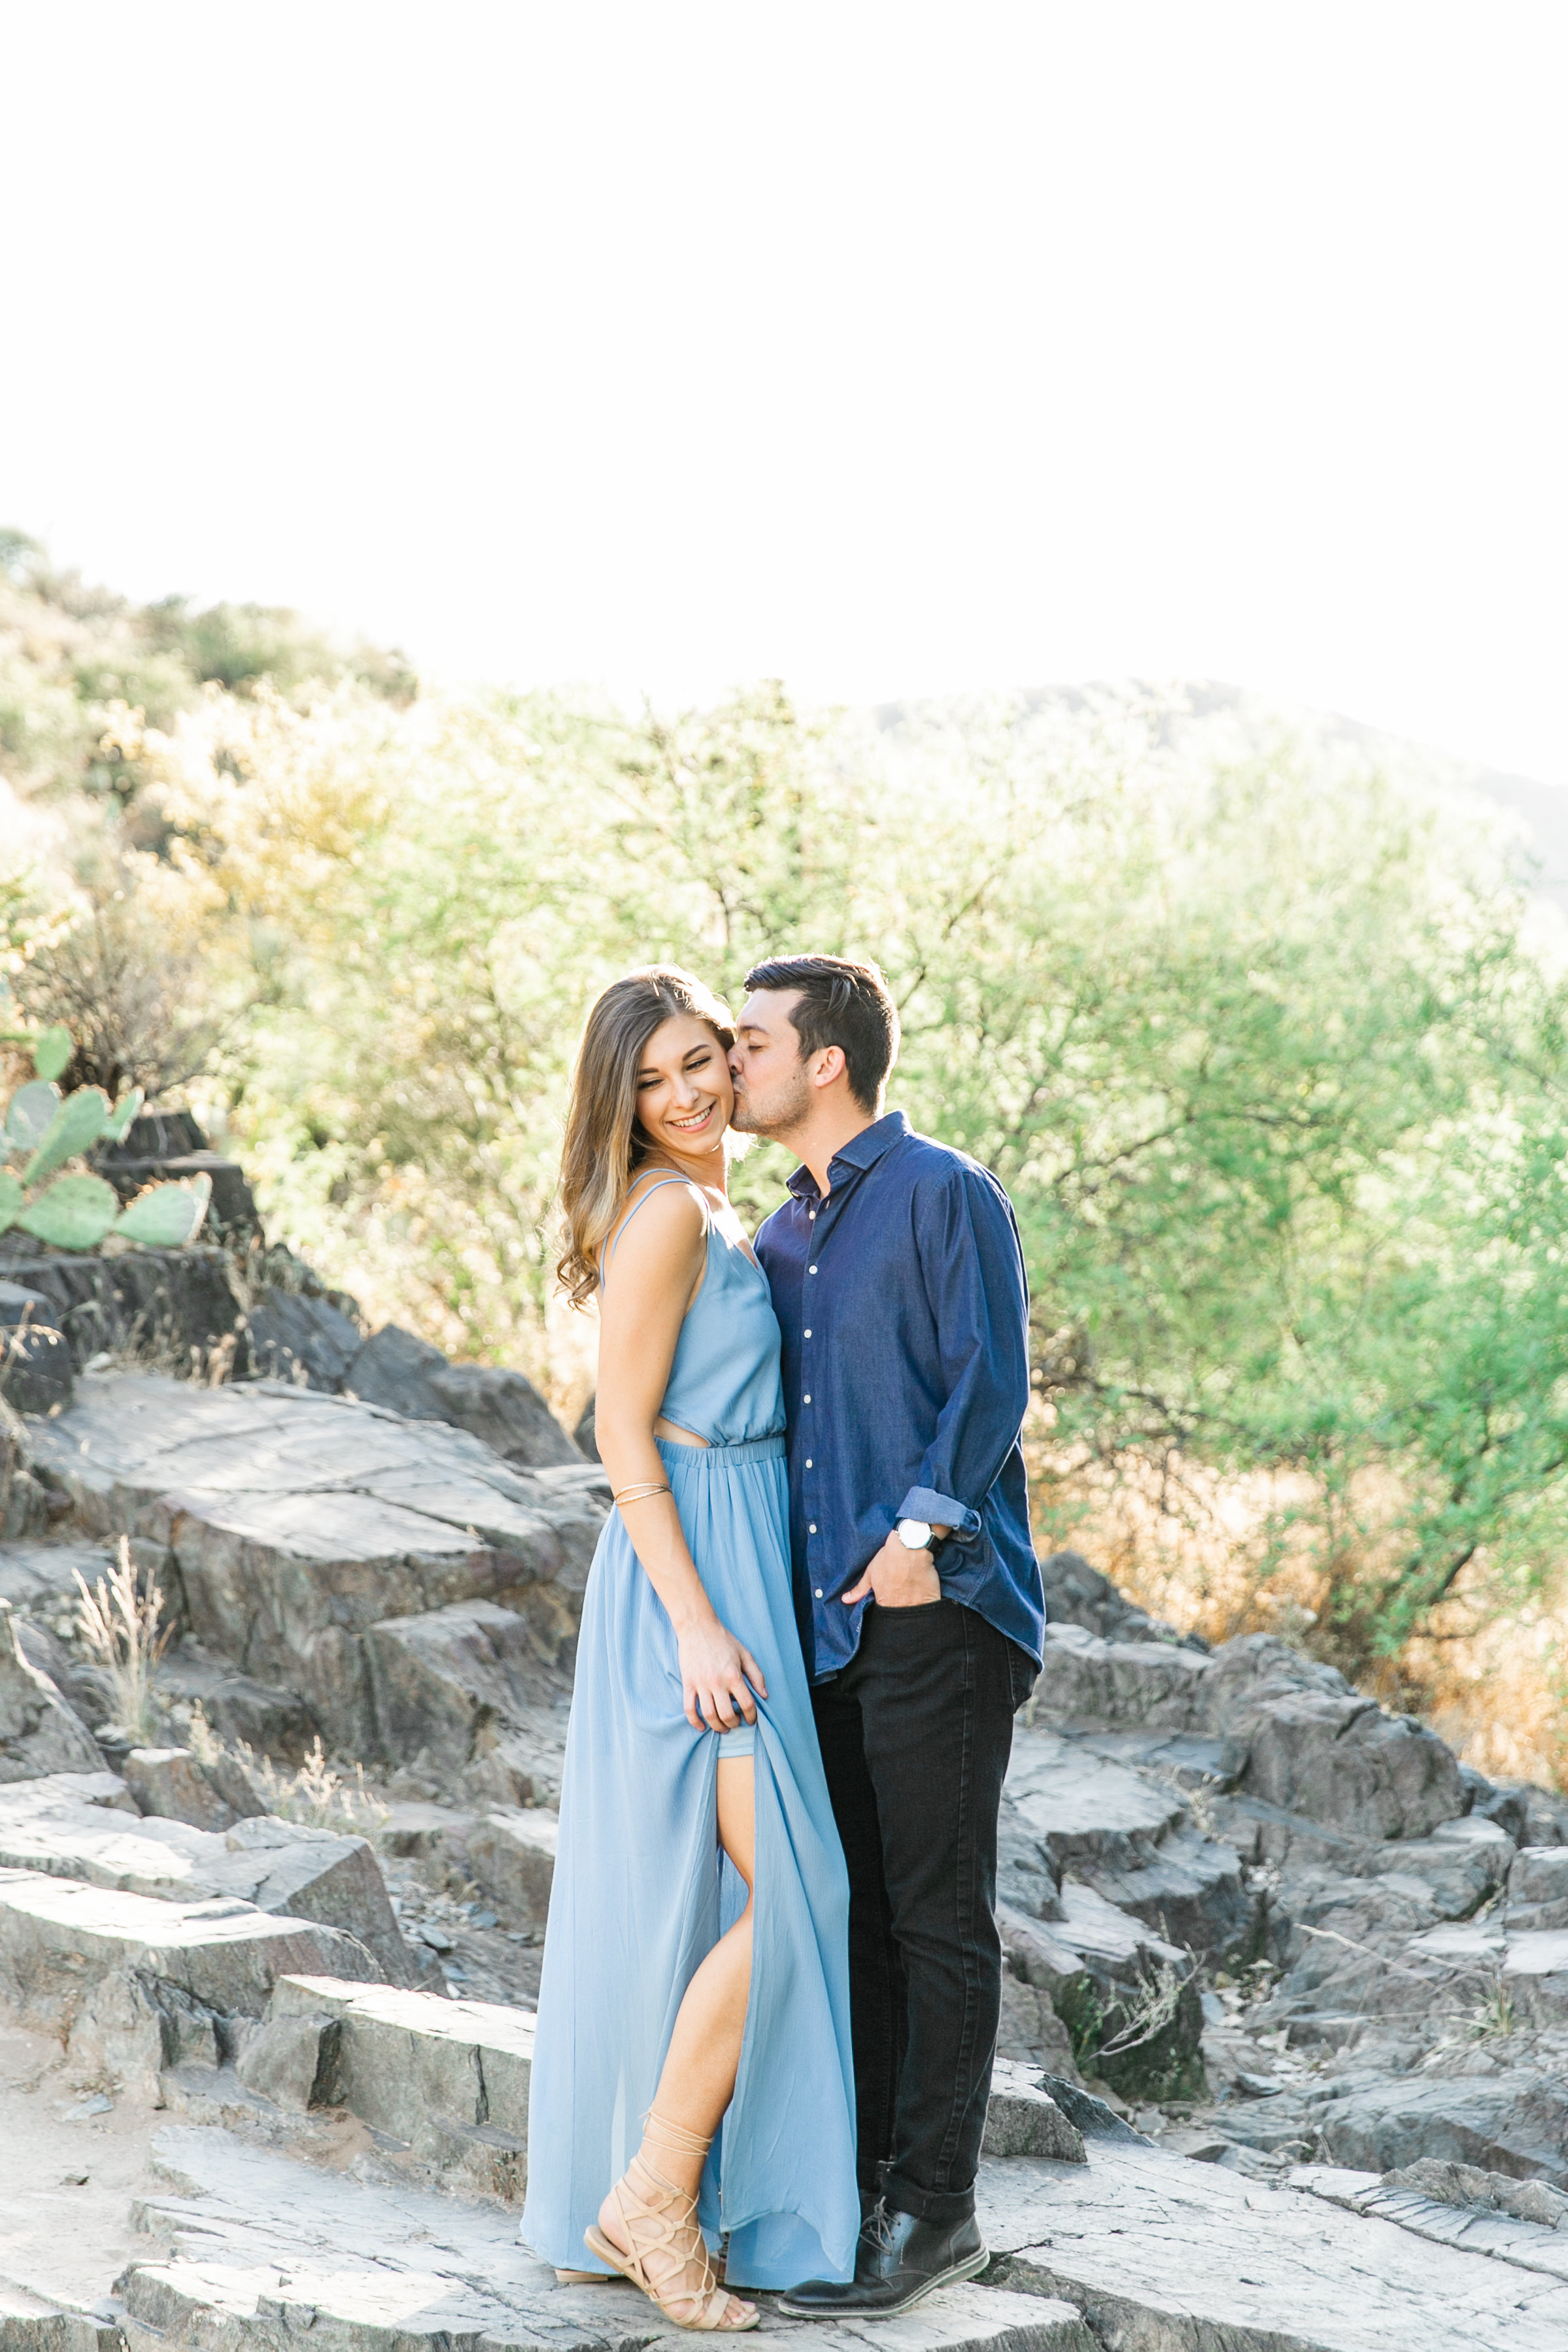 Karlie Colleen Photography - Arizona Desert Engagement - Brynne & Josh -6